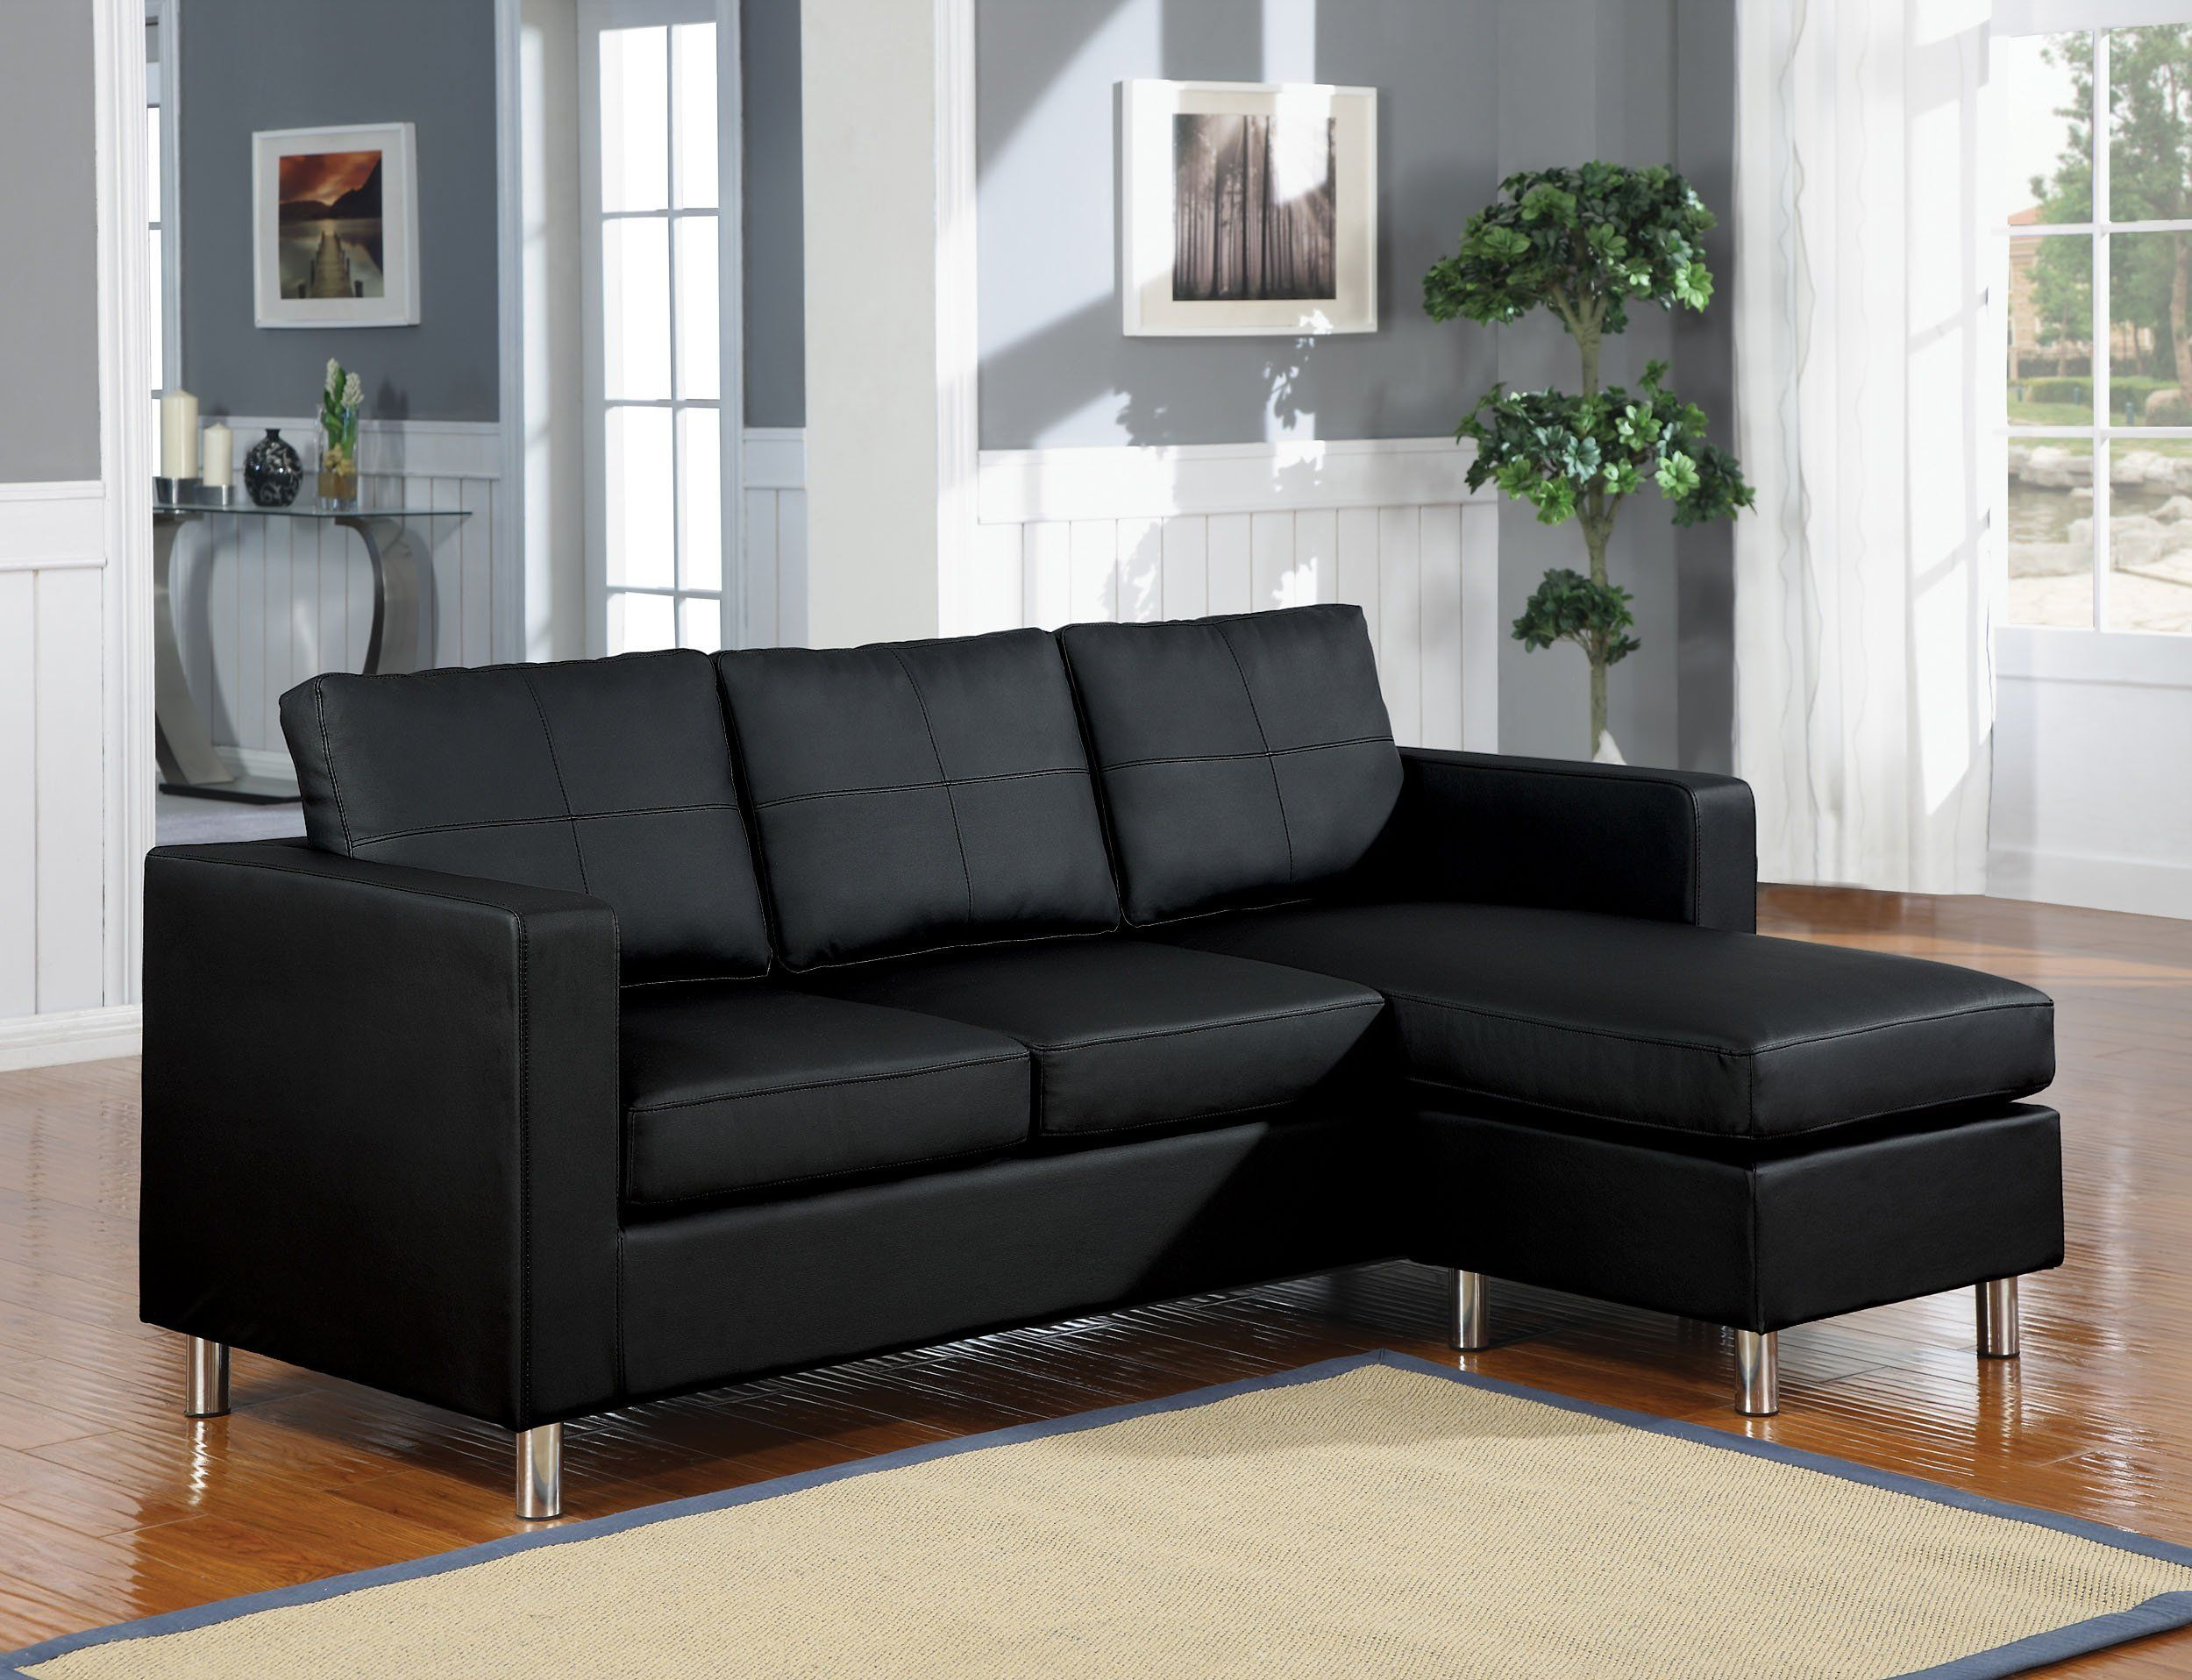 Modern Style Sectional Sofa Black Sectional Sofa Sectional